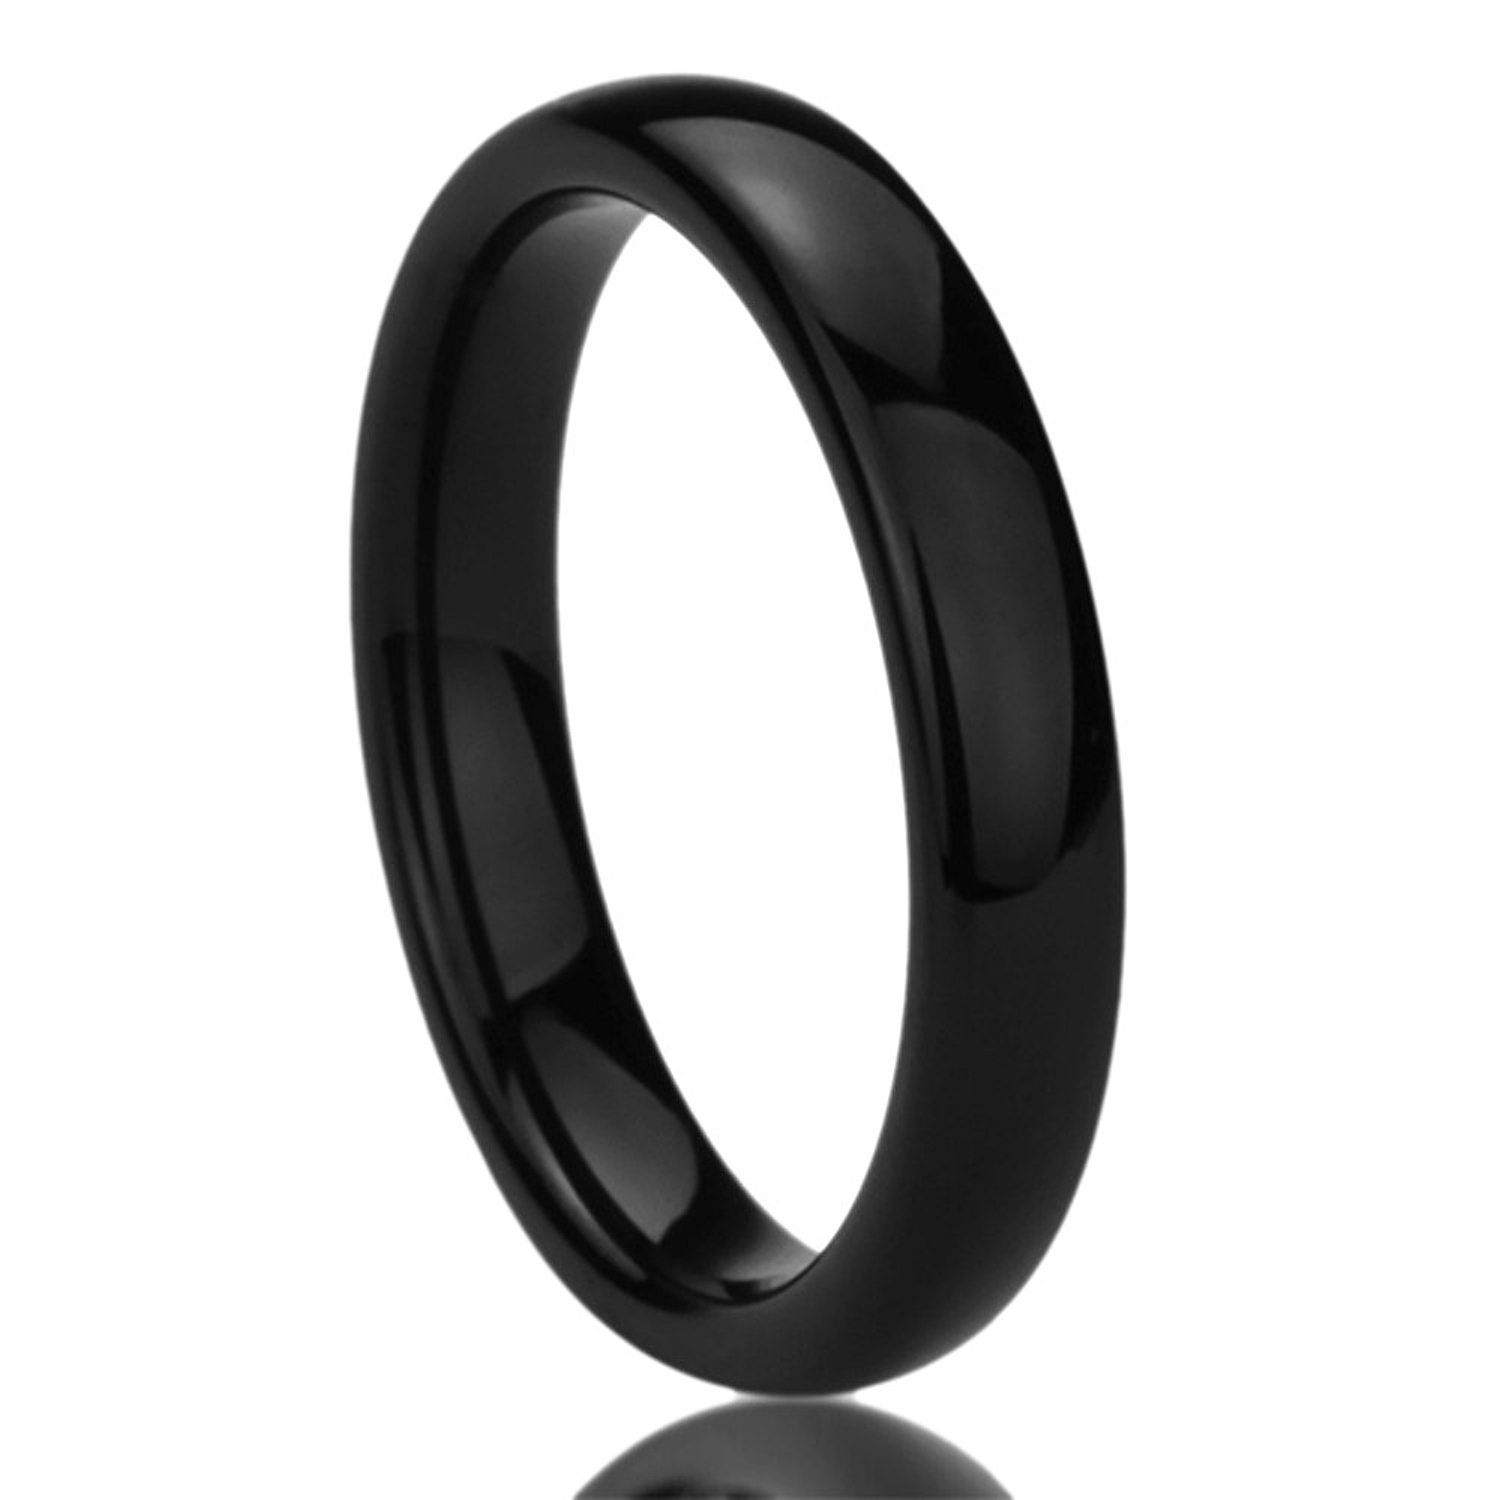 4MM Titanium Comfort Fit Wedding Band Ring Black High Polished Classy Domed Ring